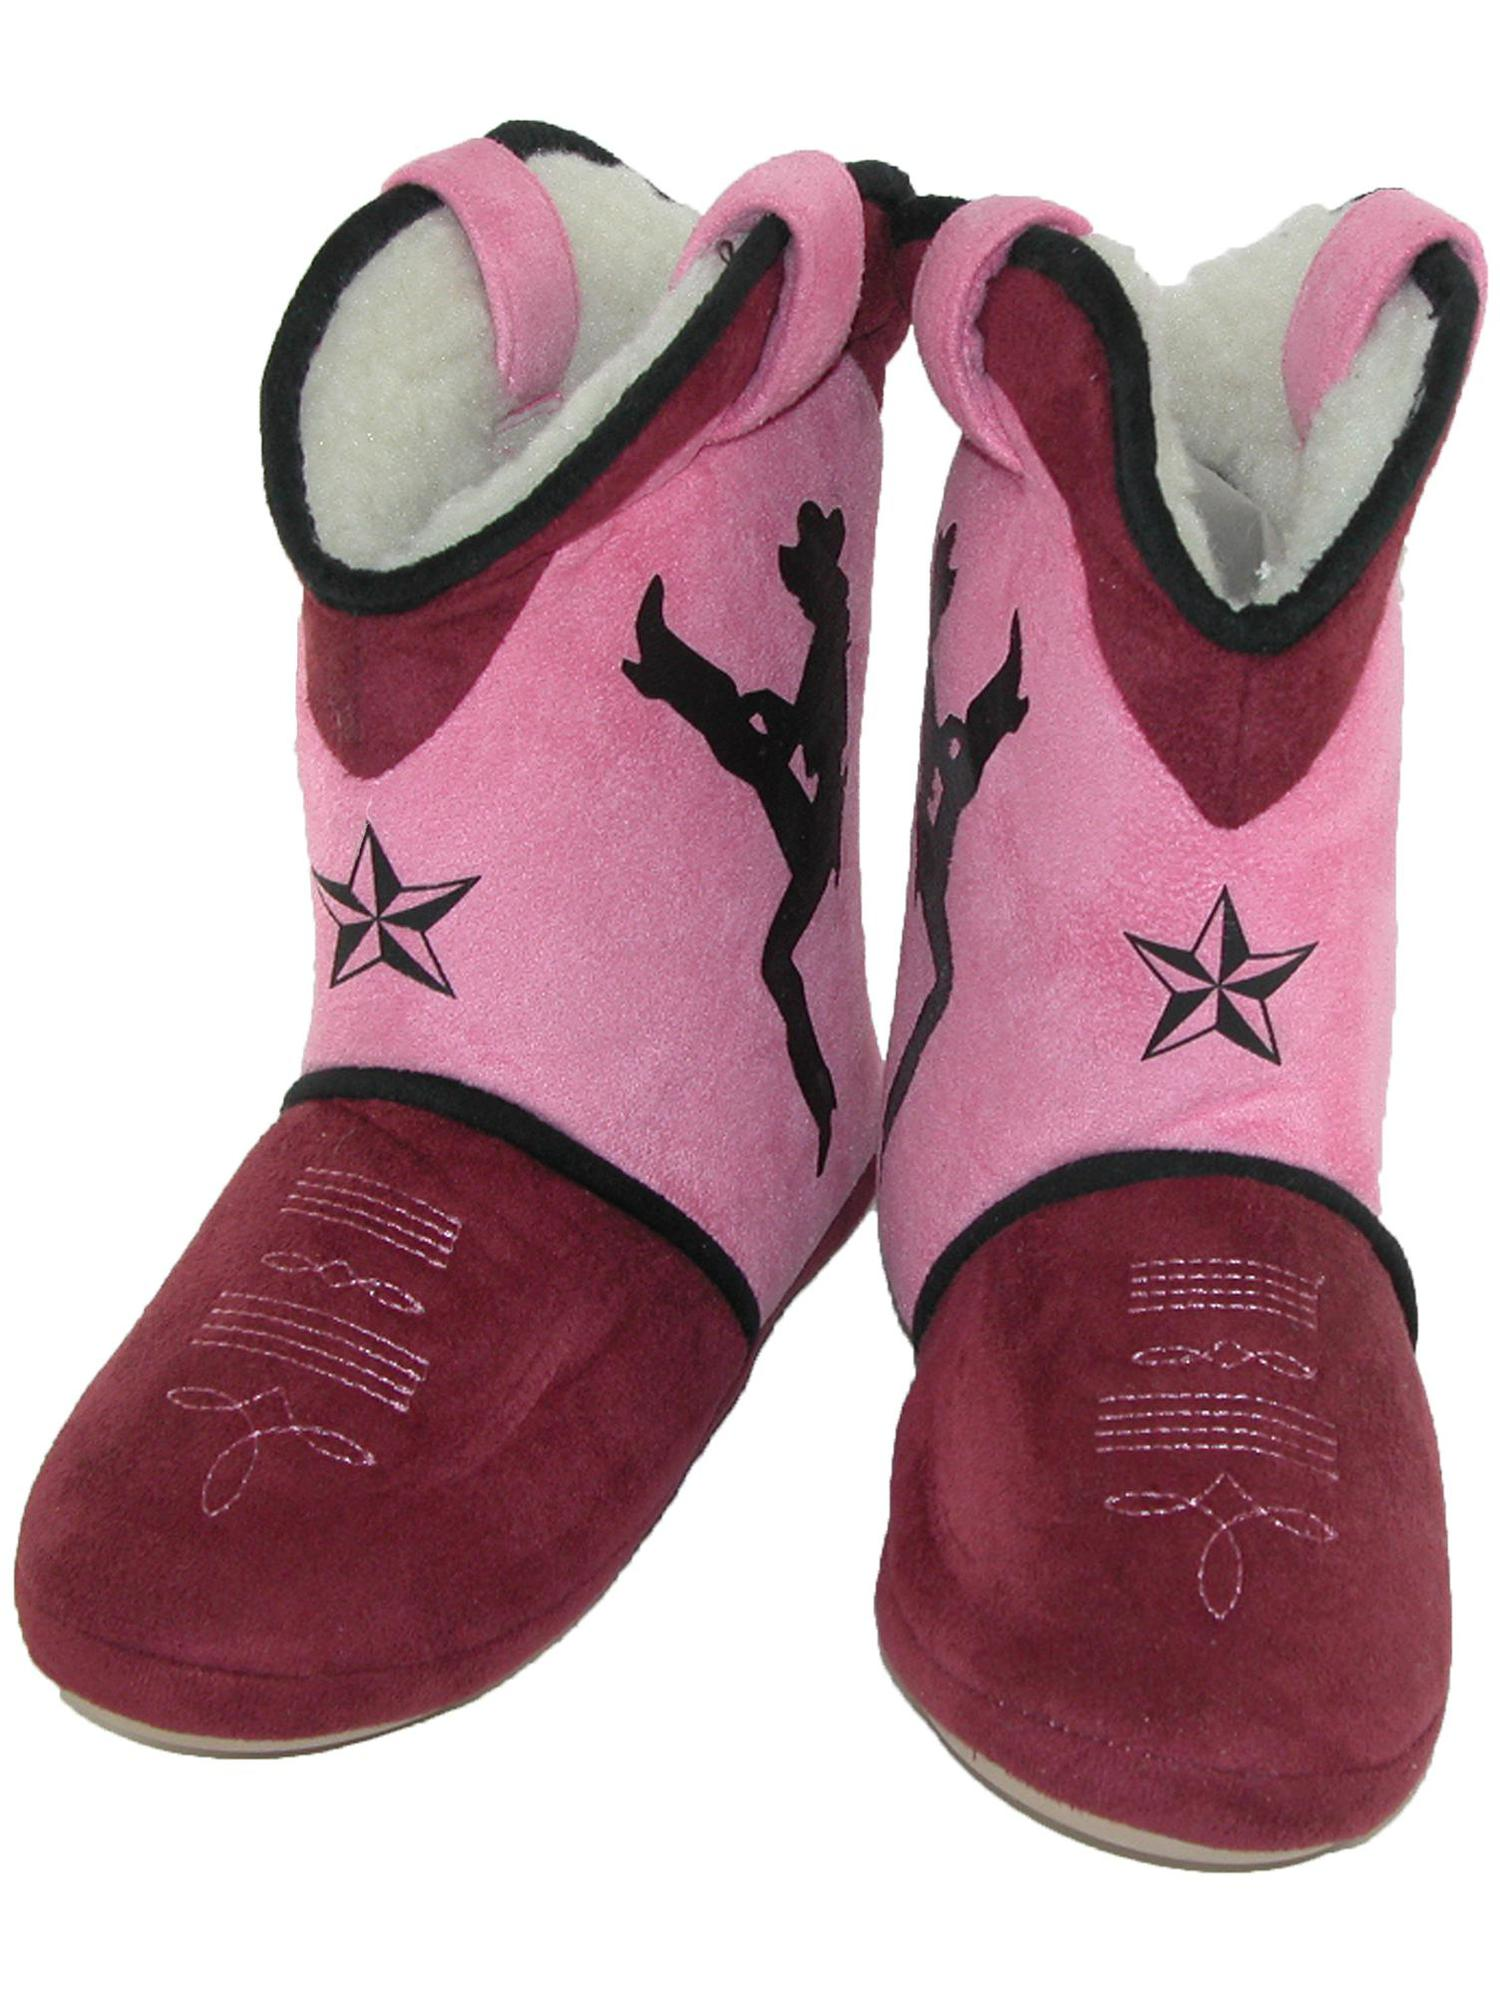 Size Small Women's Dixie Darlin Cowgirl Boot Slippers